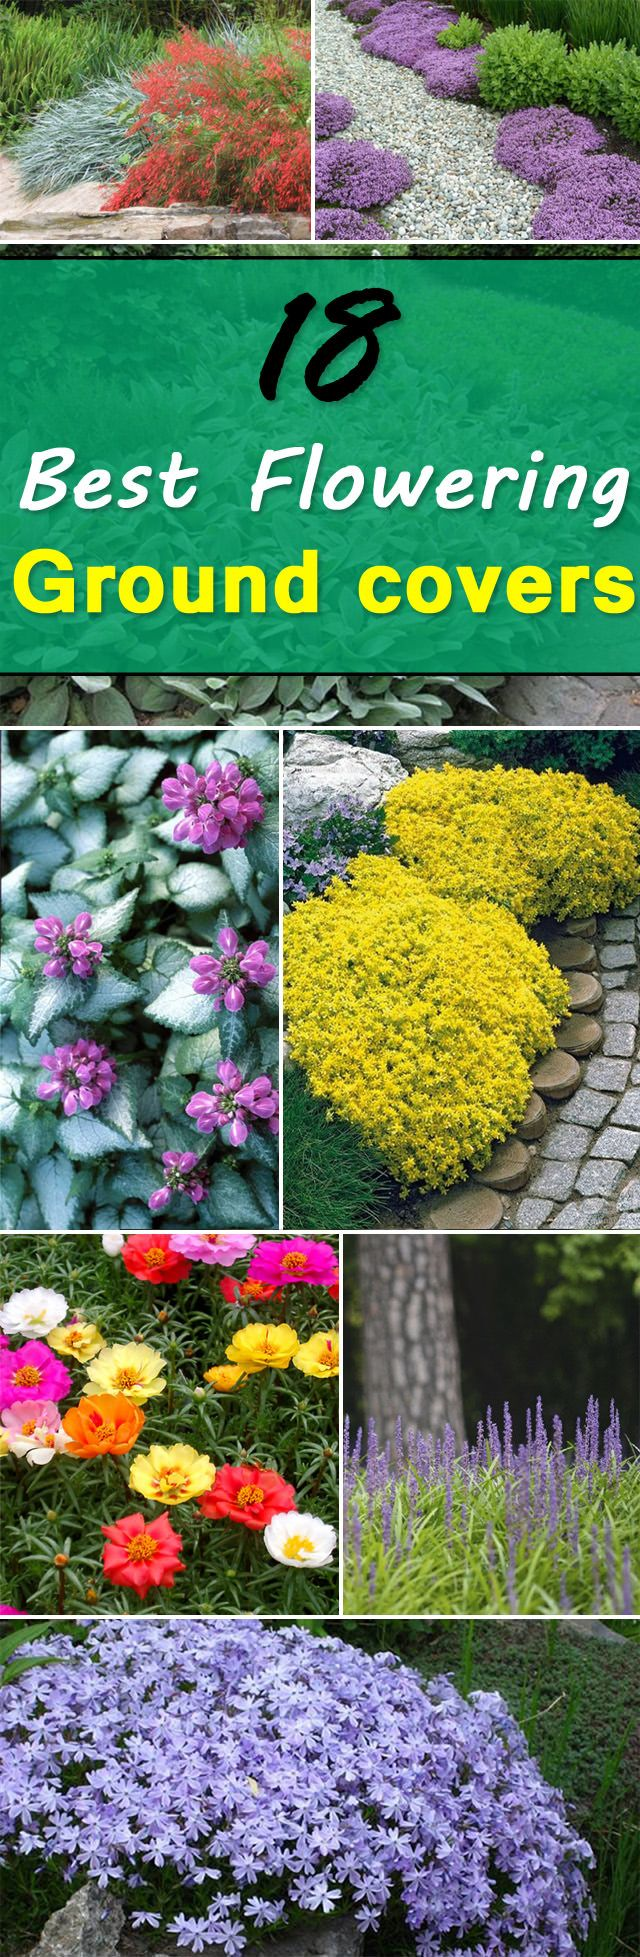 How to grow irish moss ground cover - Check Out These 18 Flowering Ground Cover Plants You Ll Find Some Best Low